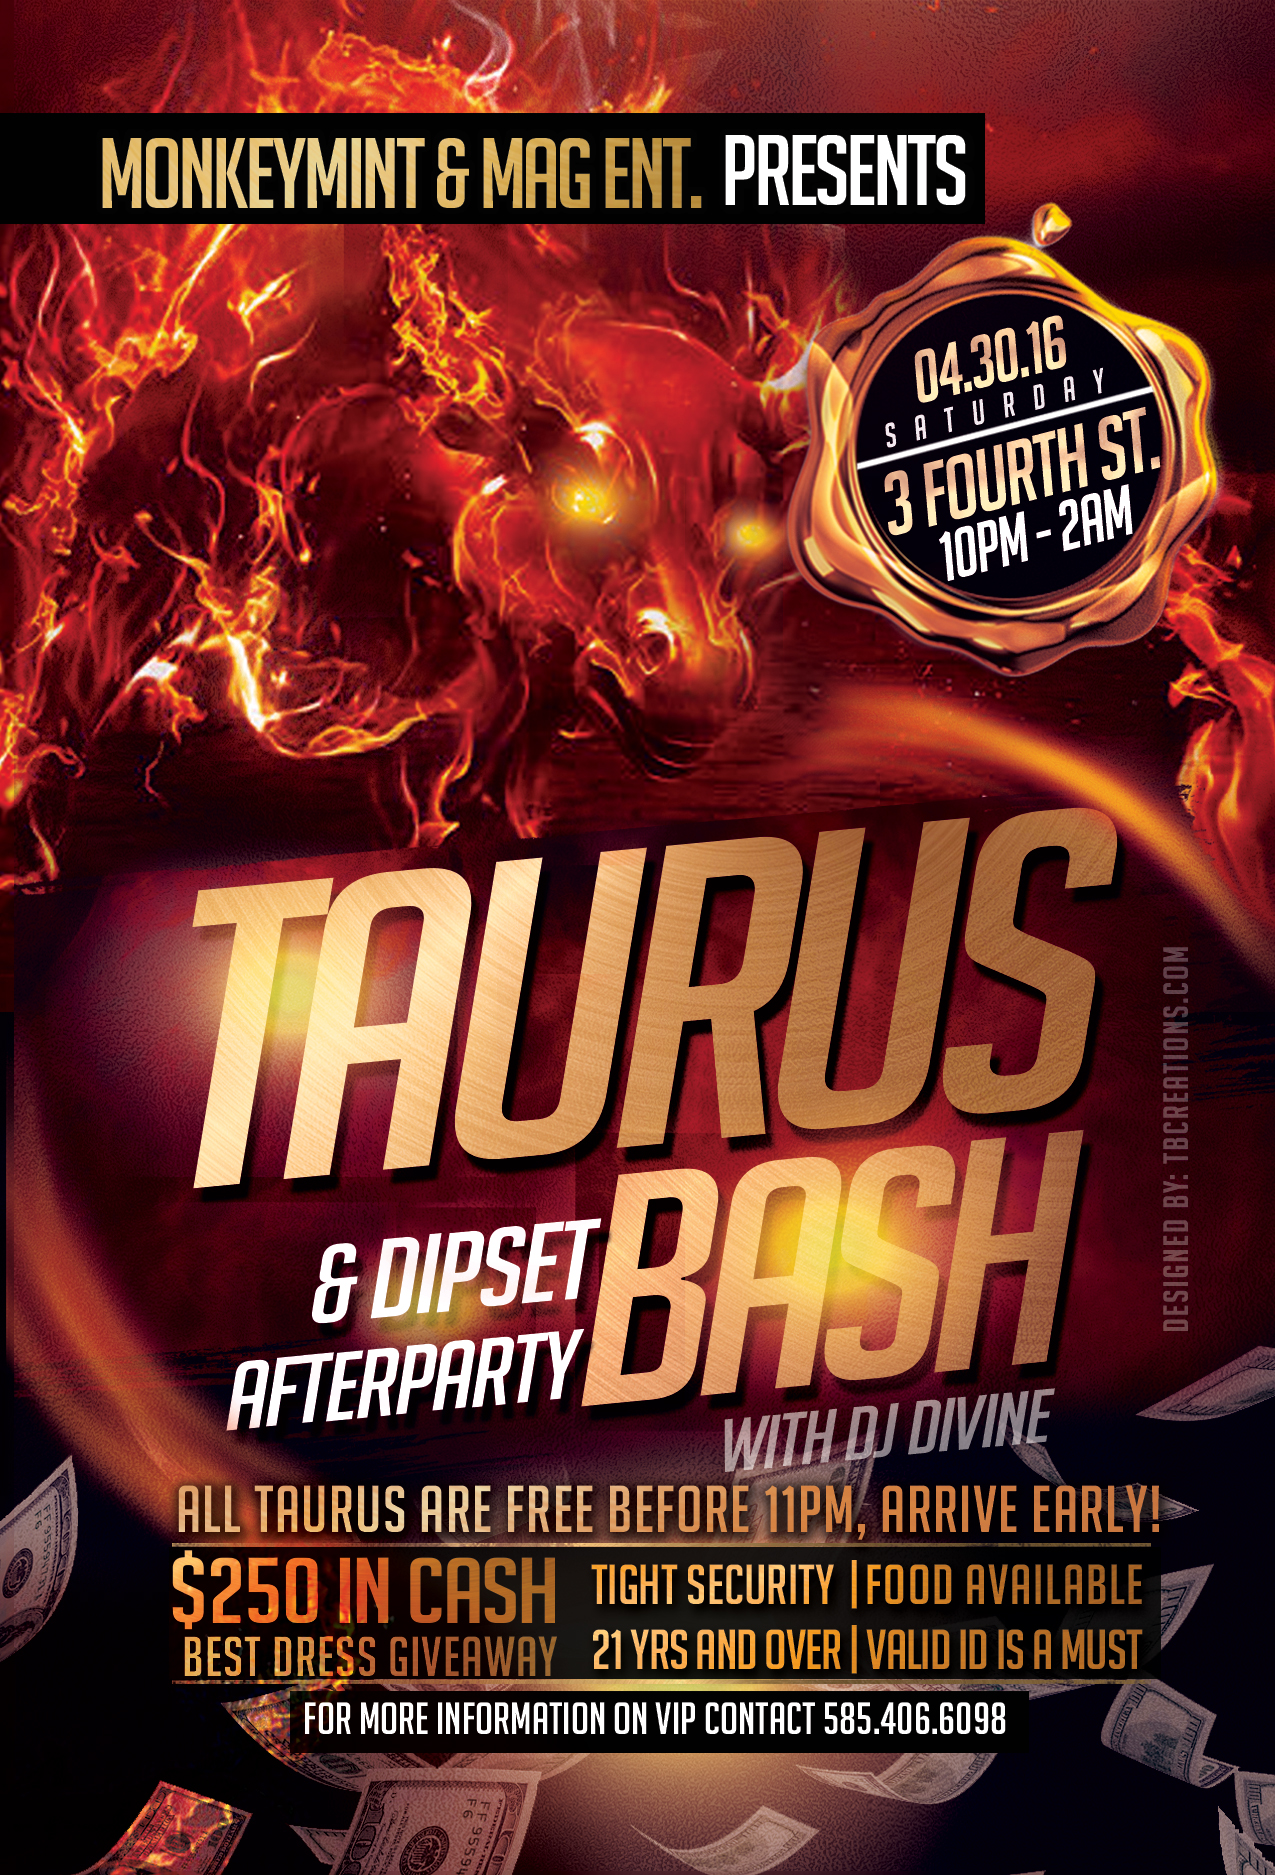 Taurus Bash Flyer